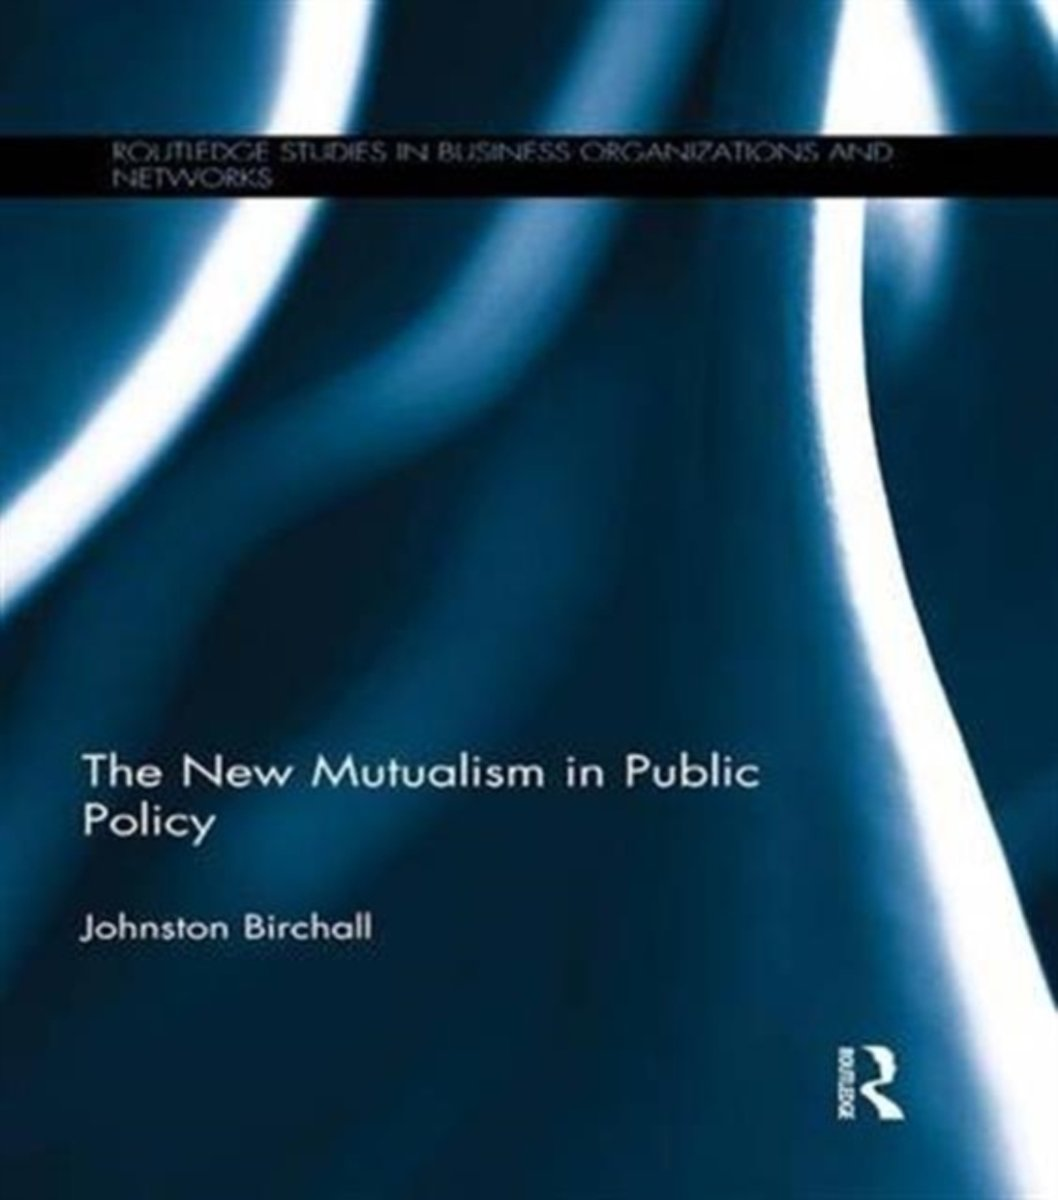 The New Mutualism in Public Policy